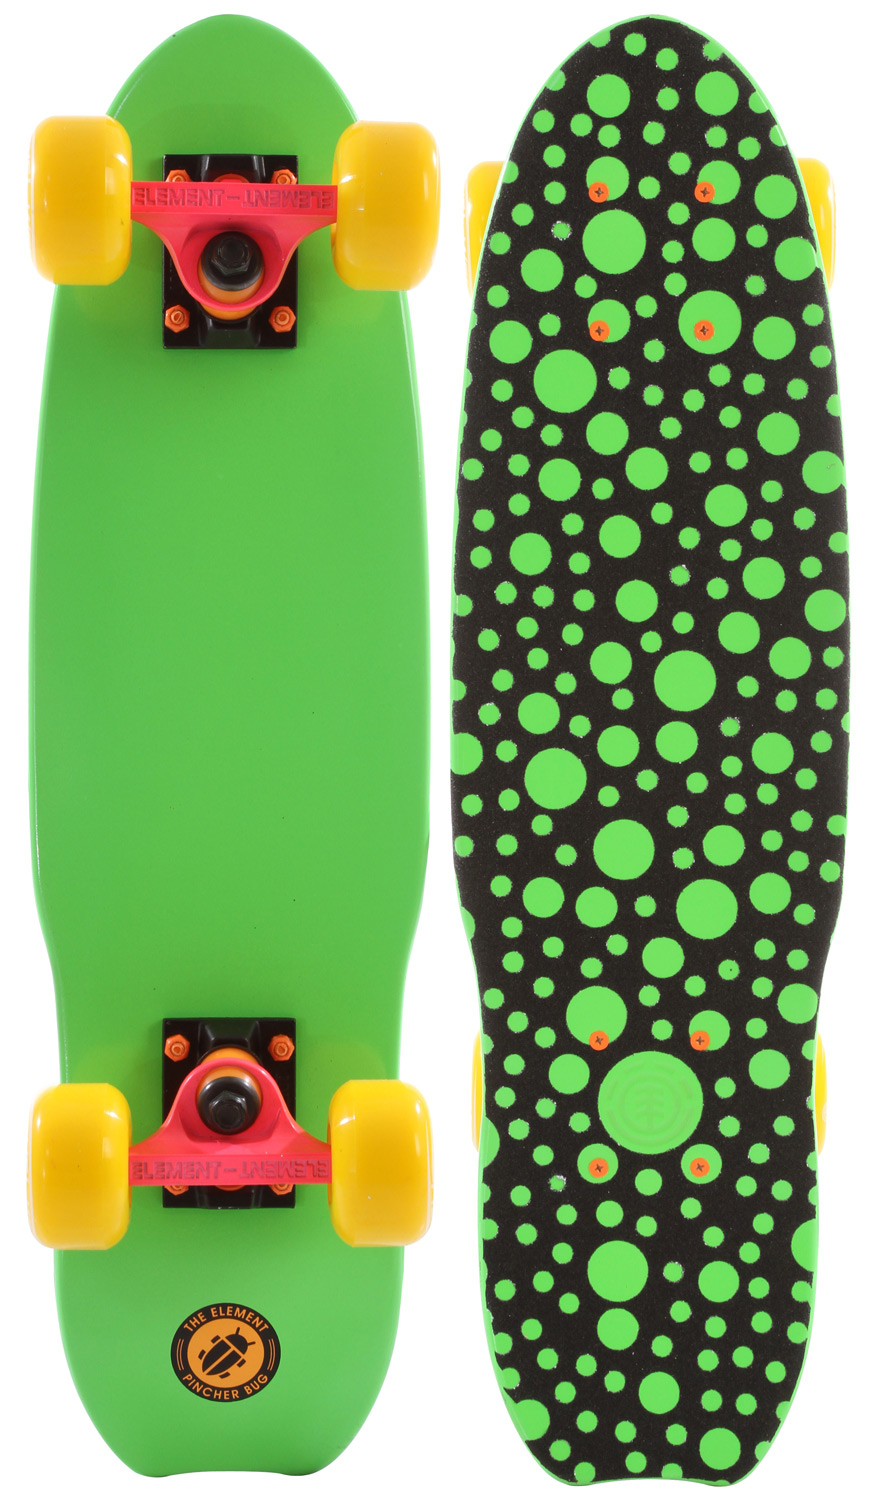 "Skateboard The Element Pincher Bug cruiser complete is a fun little cruiser board that is ready to shred right out of the box. Element wants you to travel well on this pincher shaped mini cruiser board complete with 6"" trucks, soft cruiser wheels, Swiss cheese style top grip, and a bright green color that is sure to stand out. The perfect travel companion or replacement for your car the Element Pincher Bug cruiser from Element will fit on your backpack and get you anywhere you need to go.Key Features of the Element Pincher Bug Cruiser Complete: Notch tail design for extra grip at the rear. Swiss cheese grip tape on the deck. 6"" Element trucks. Soft cruiser wheels. Maple wood construction. Specifications: -Length: 23 in. -Width: 6.25 in. -Height: 3.50 in. -Wheel diameter: 62 mm. - $77.95"